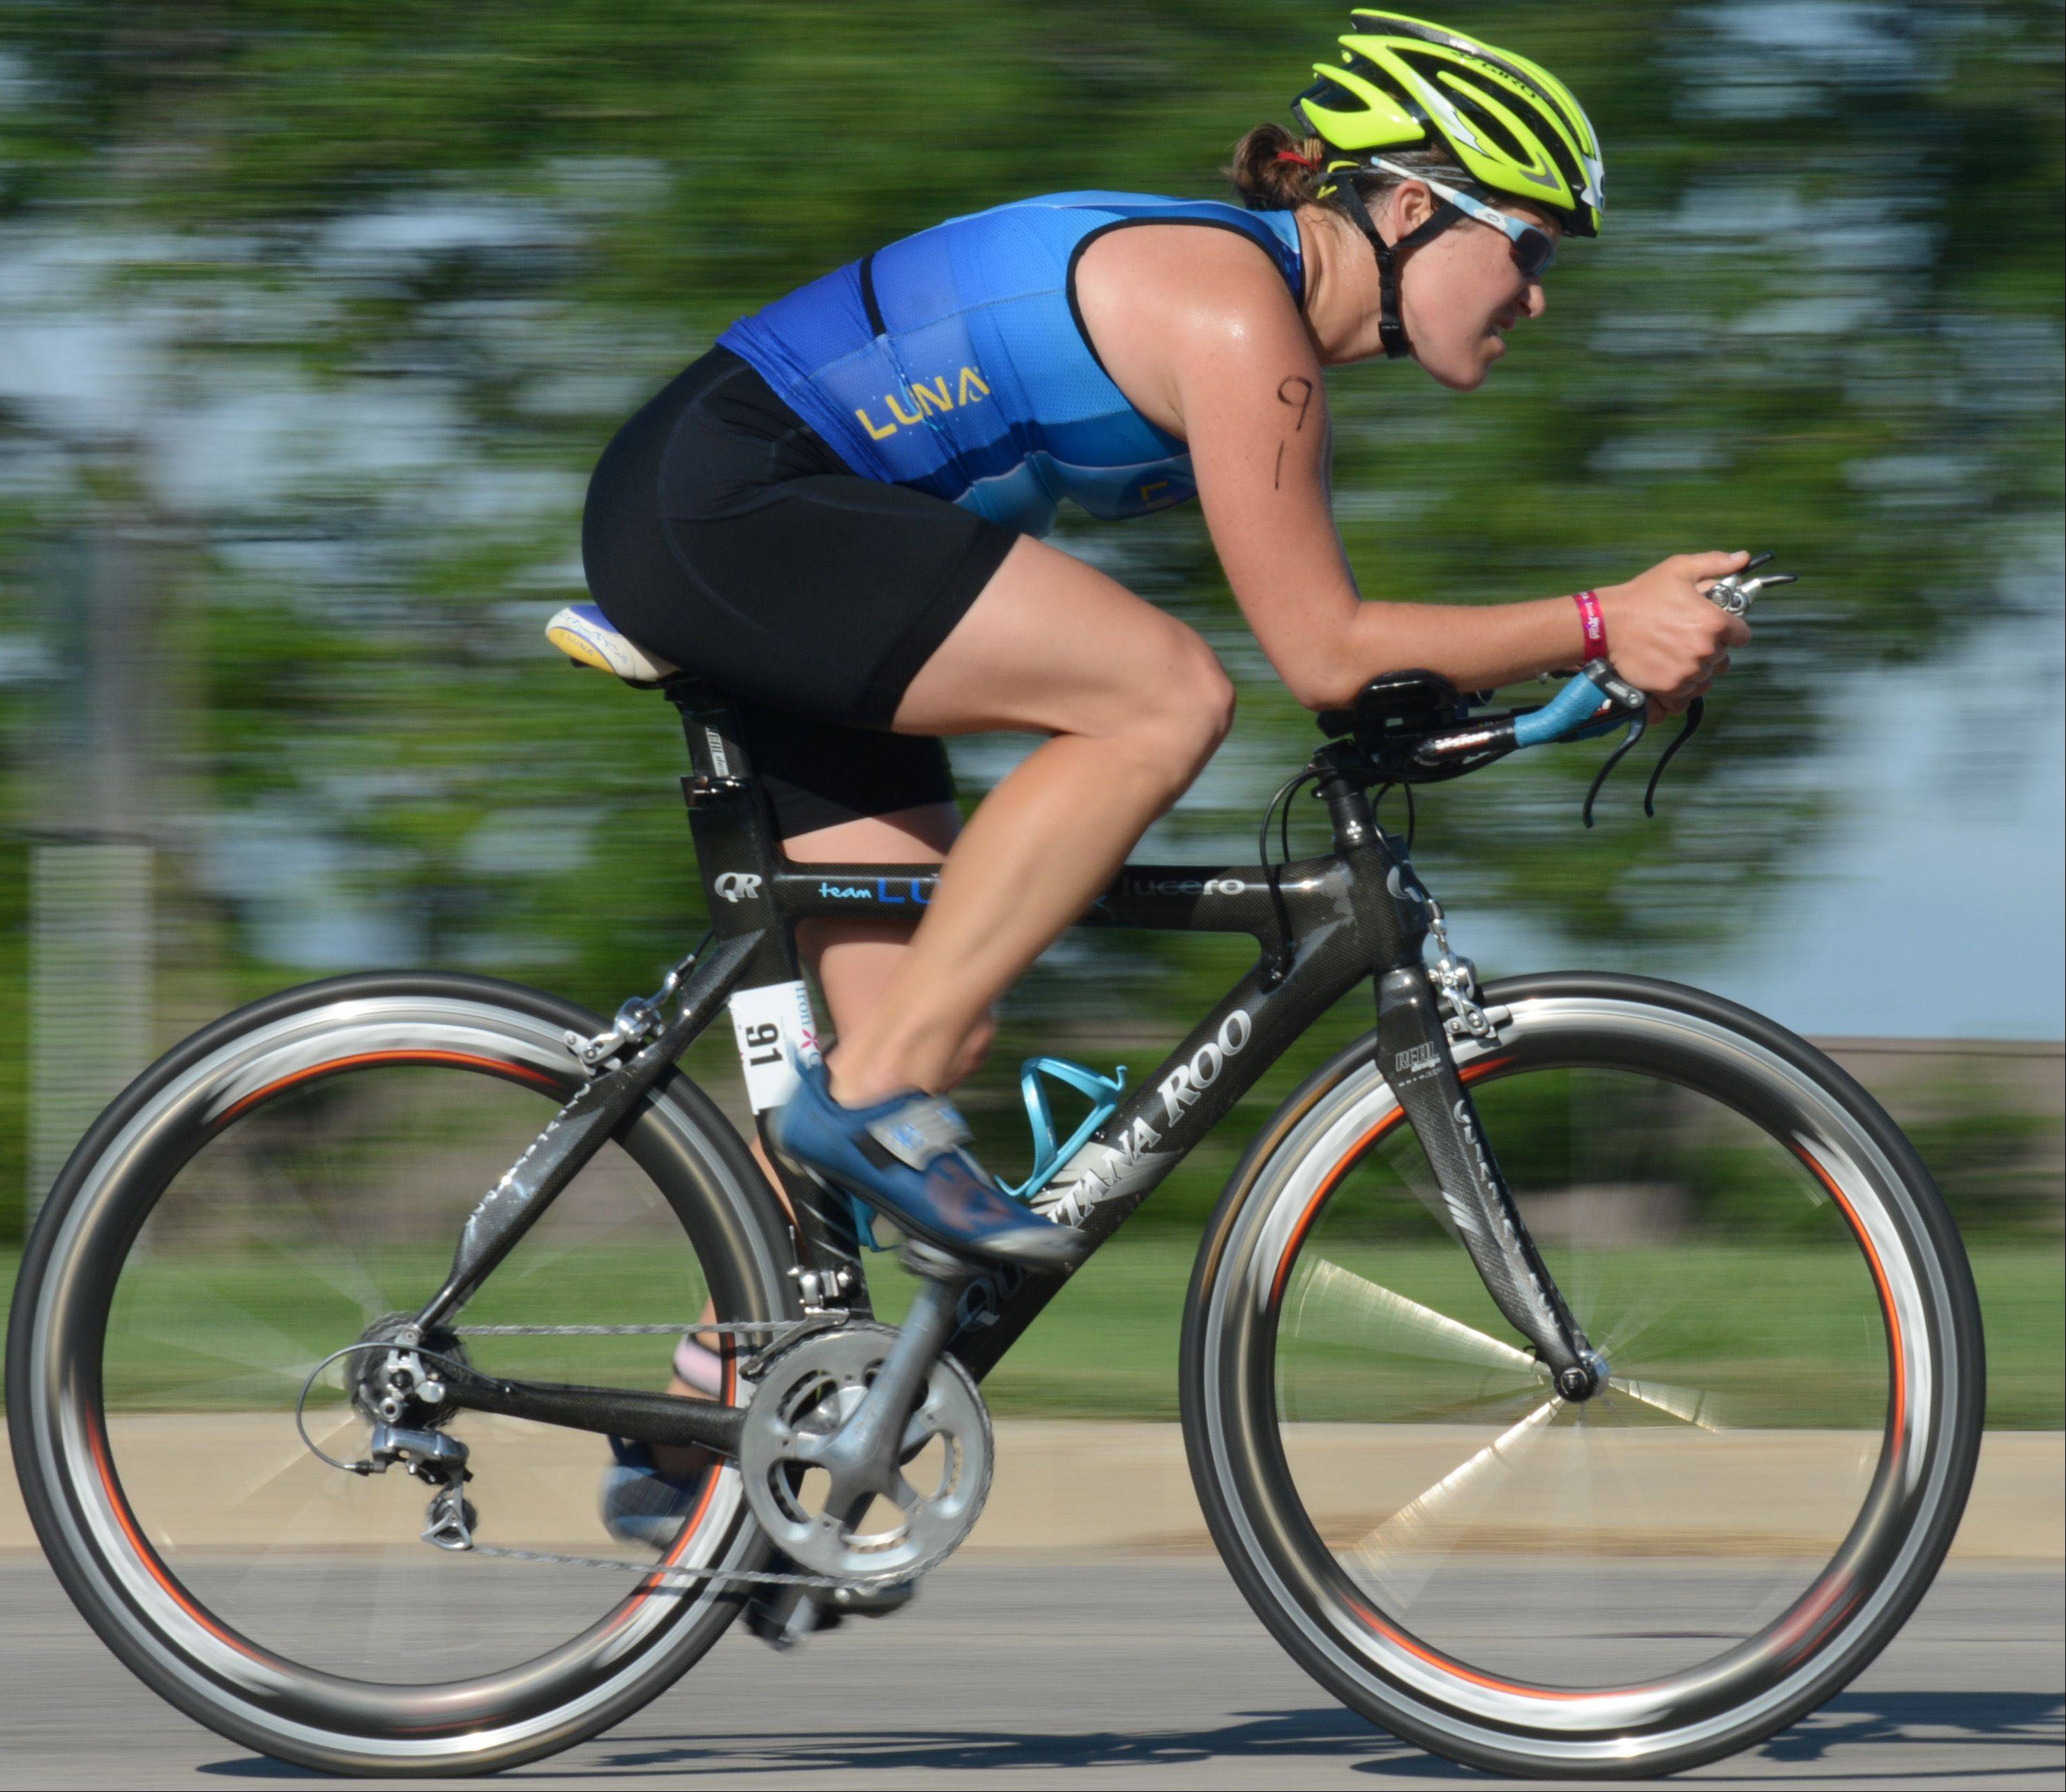 Stephanie Skladzien, of Kildeer, bikes during the Athleta Iron Girl Triathlon in Lake Zurich Sunday.